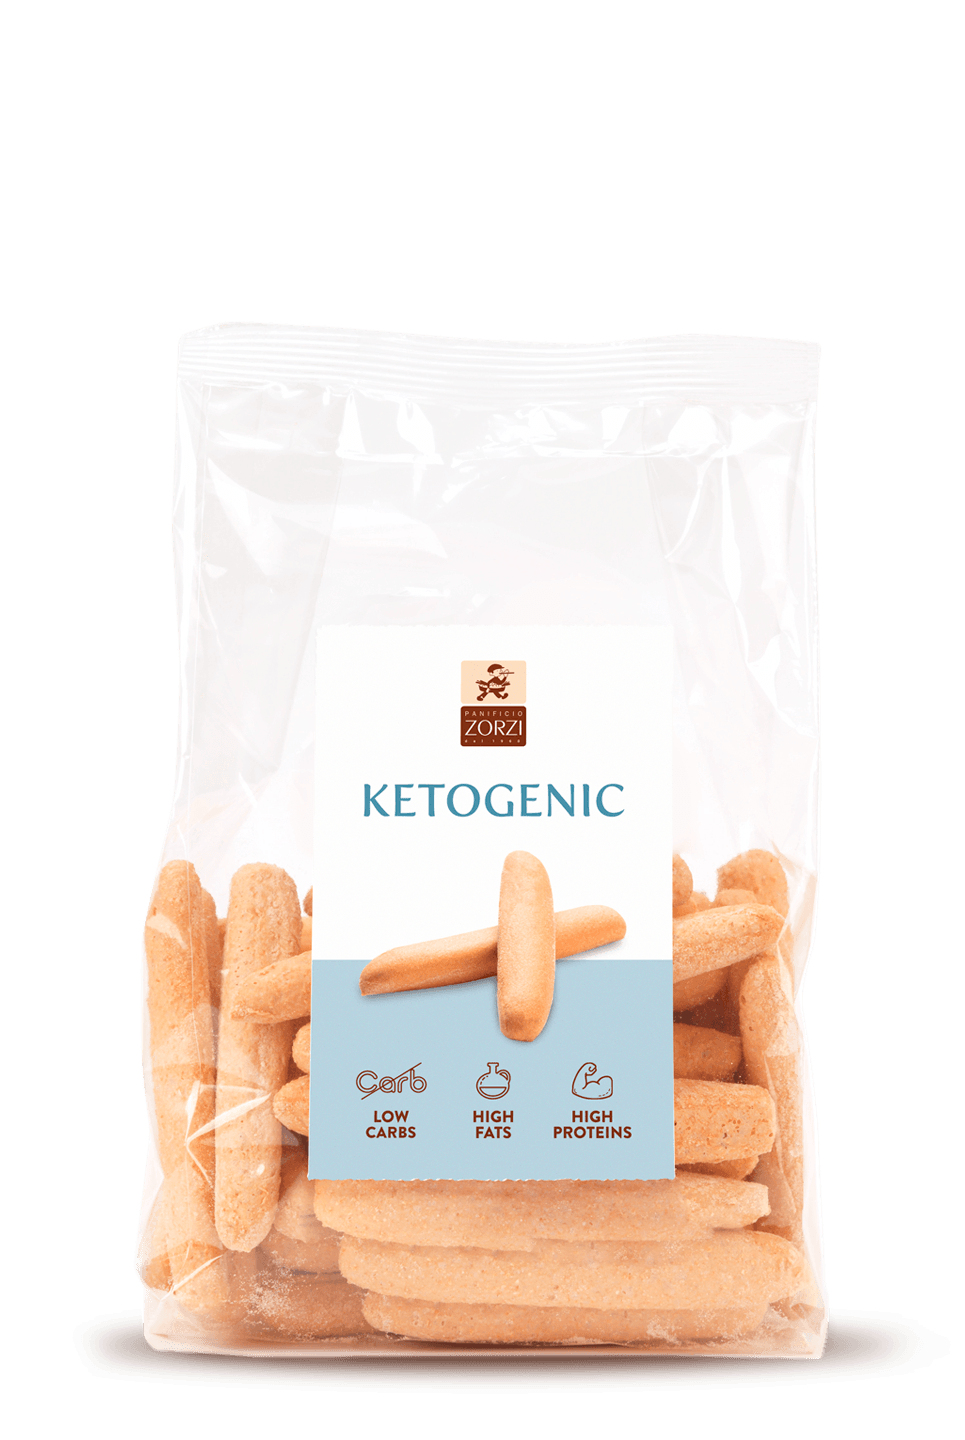 Ketogenic Breadsticks